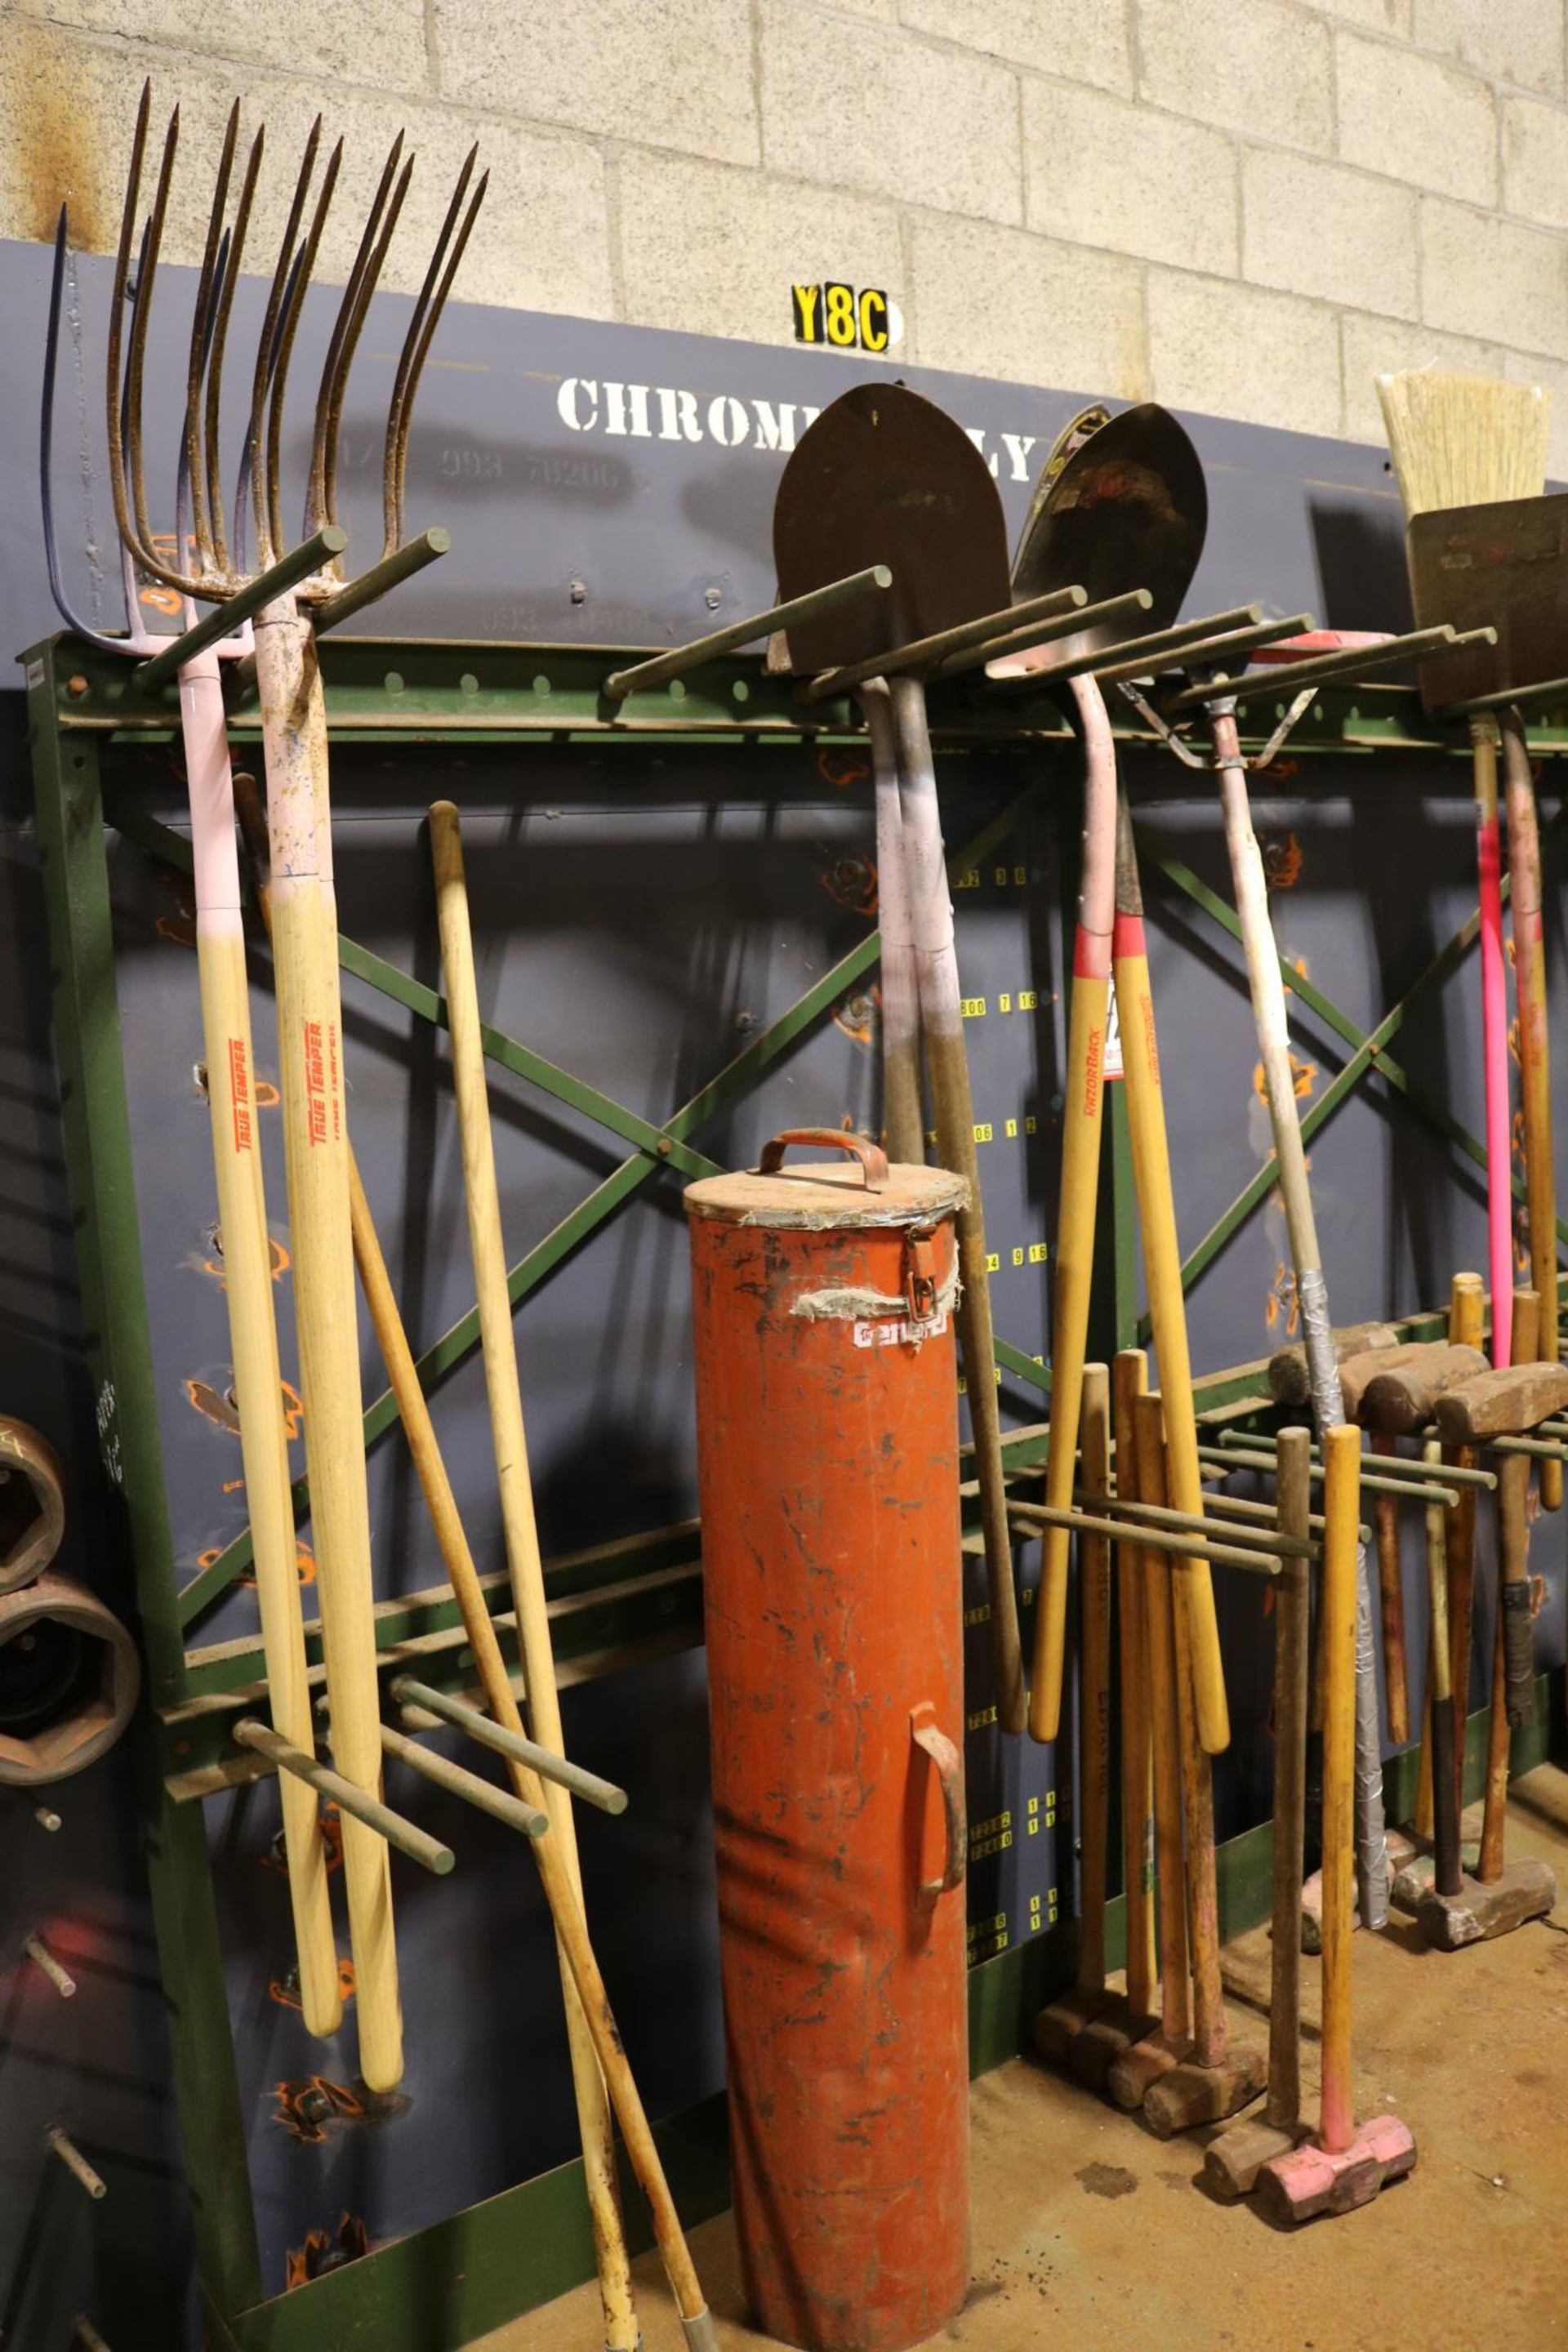 Lot 42 - LOT - STEEL LAWN IMPLEMENT RACK, W/ CONTENTS TO INCLUDE: PITCHFORKS, SHOVELS, POST HOLE DIGGERS,